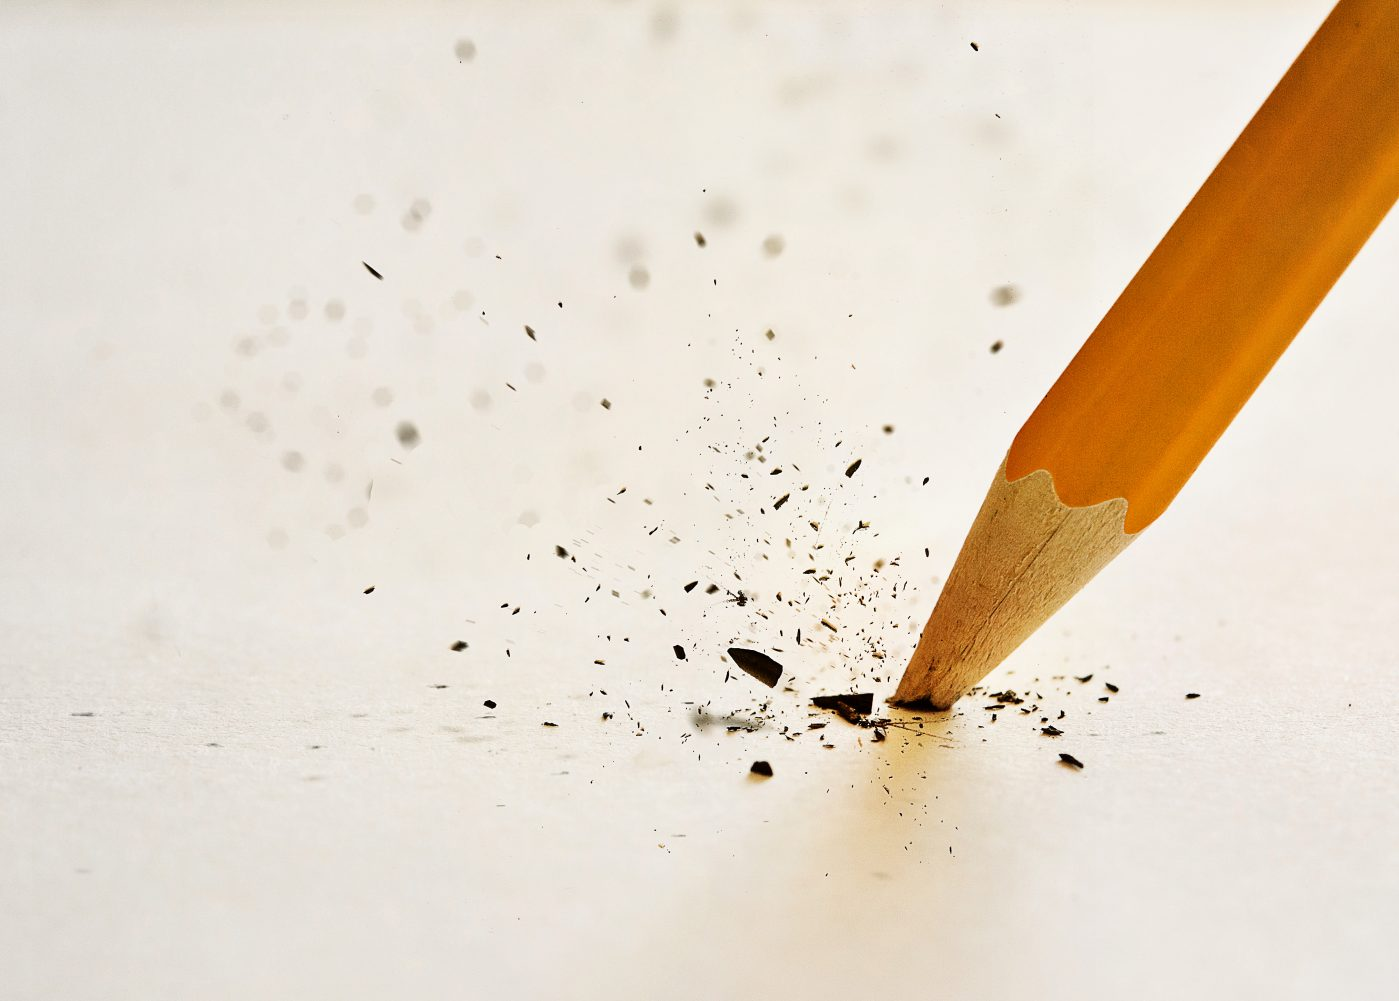 The lead of the pencil breaking after pressing down too hard.